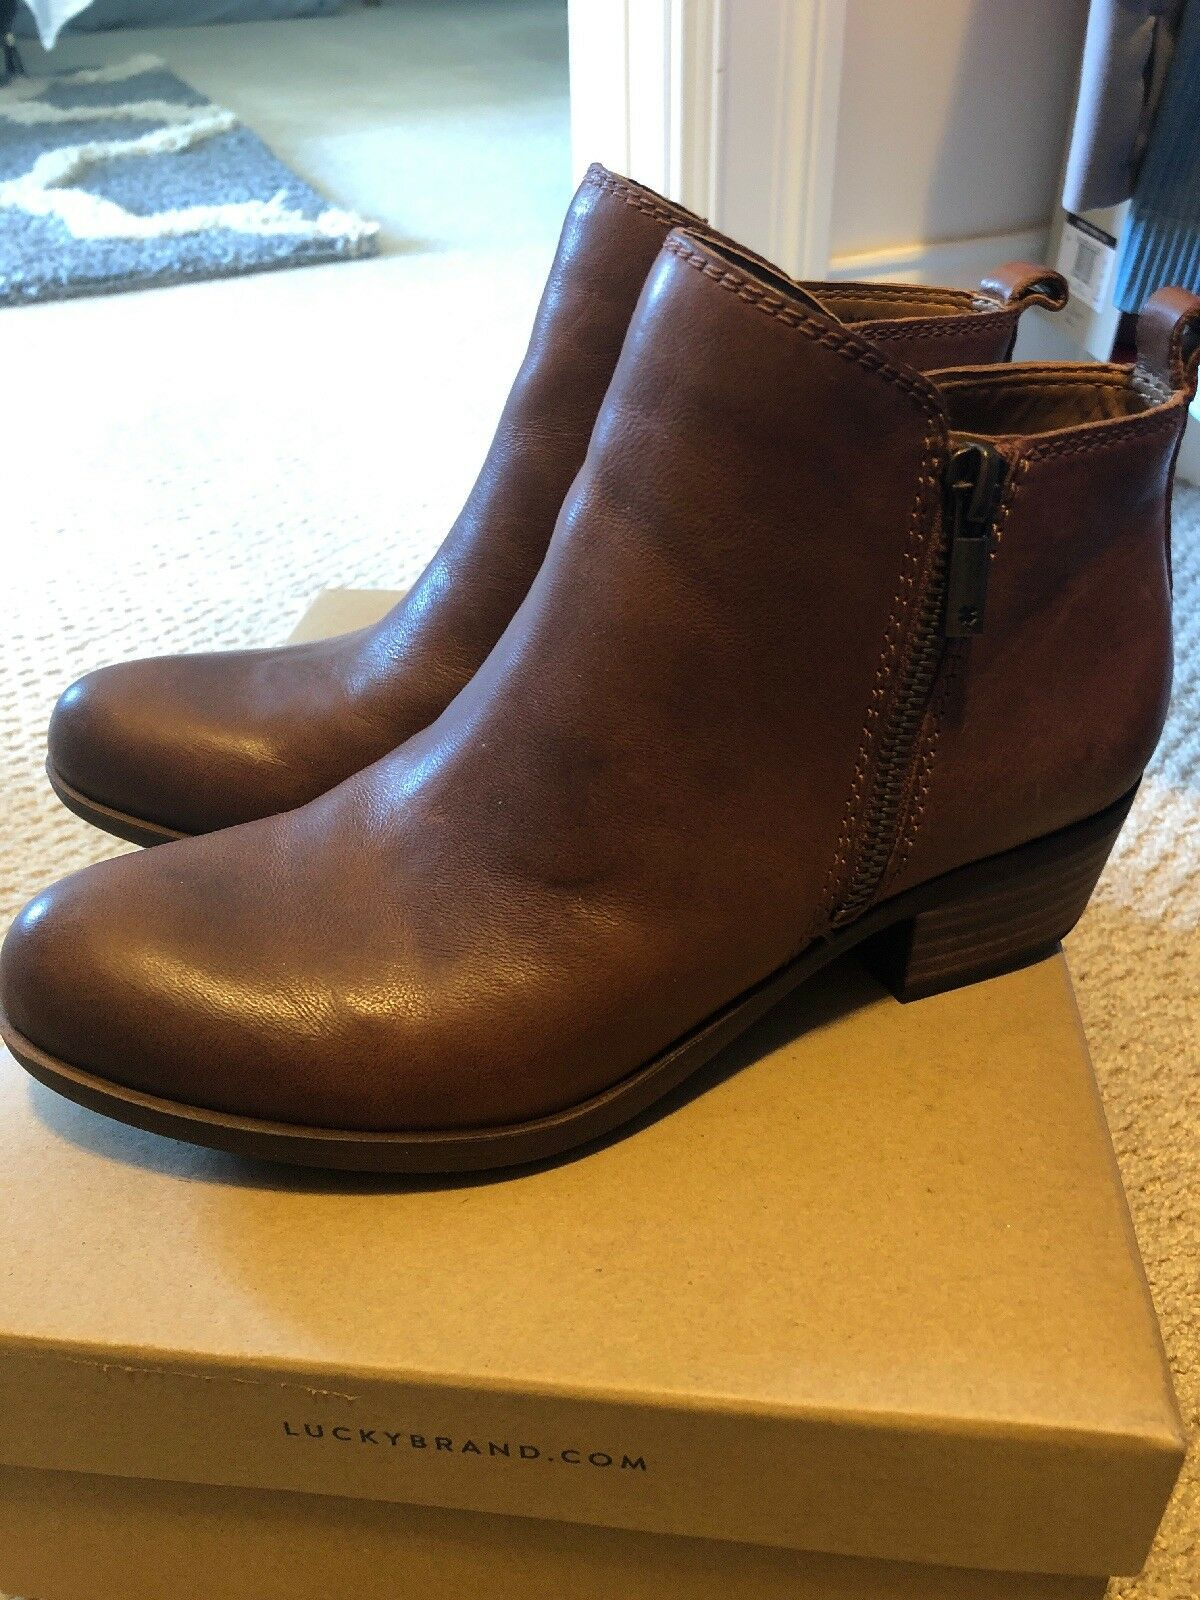 New Lucky Brand Basel Booties Boots Toffee 7m